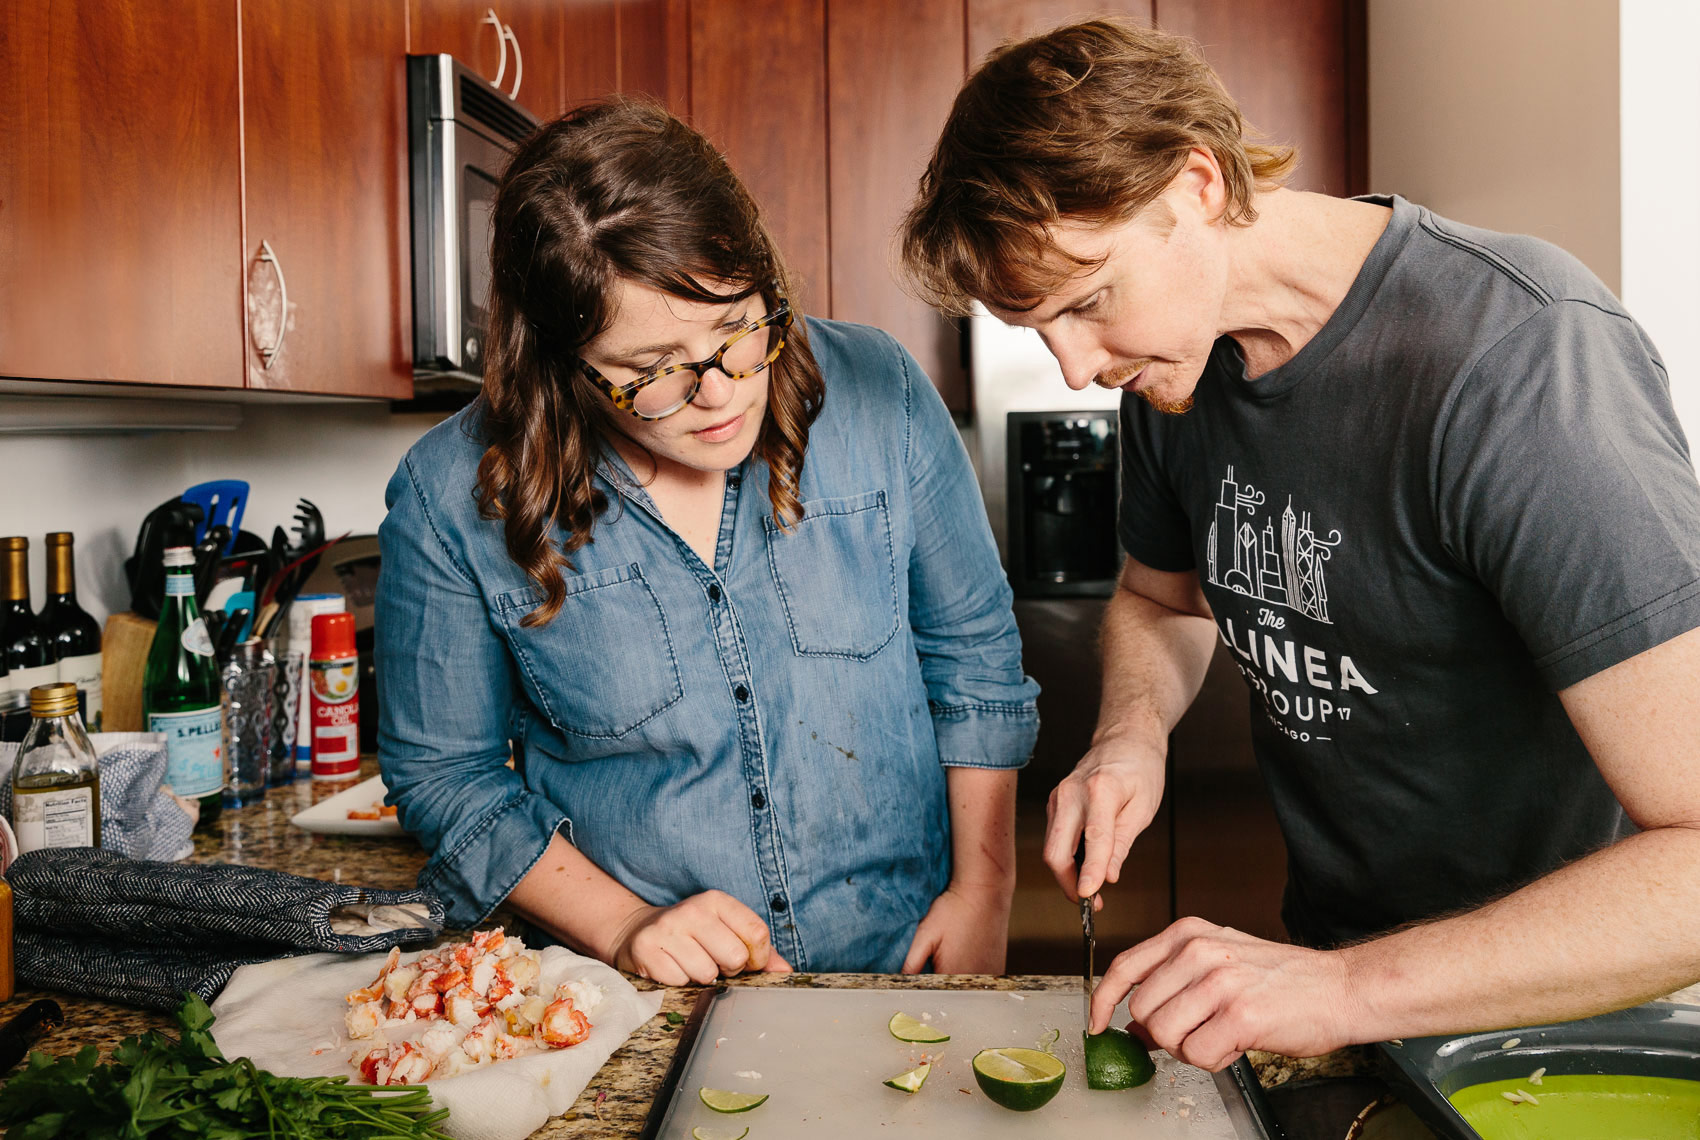 Lucy Hewett | Chicago Freelance Photographer | Grant Achatz